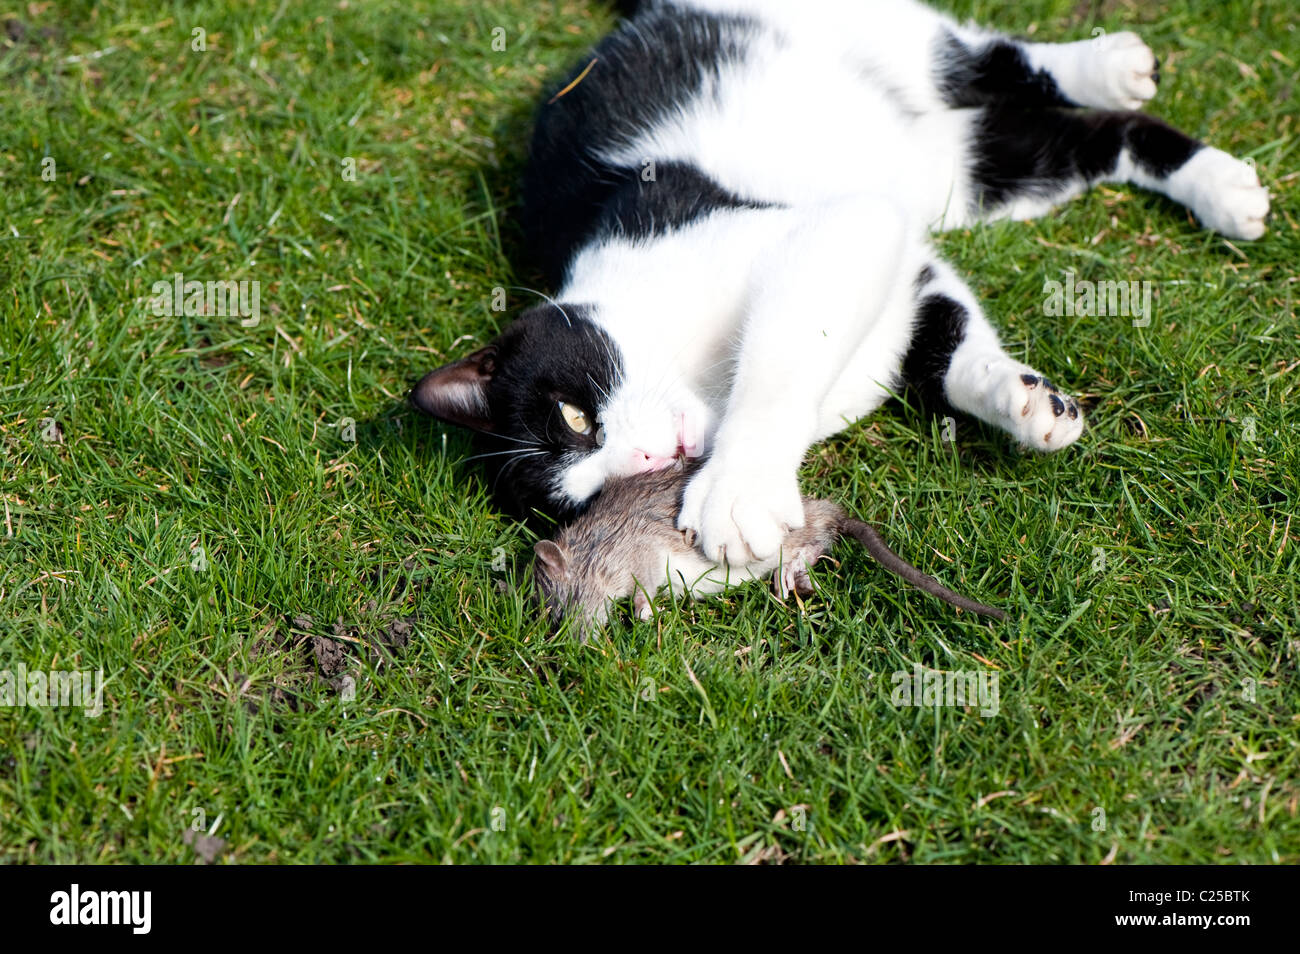 Black and white cat playing with captured rat. - Stock Image